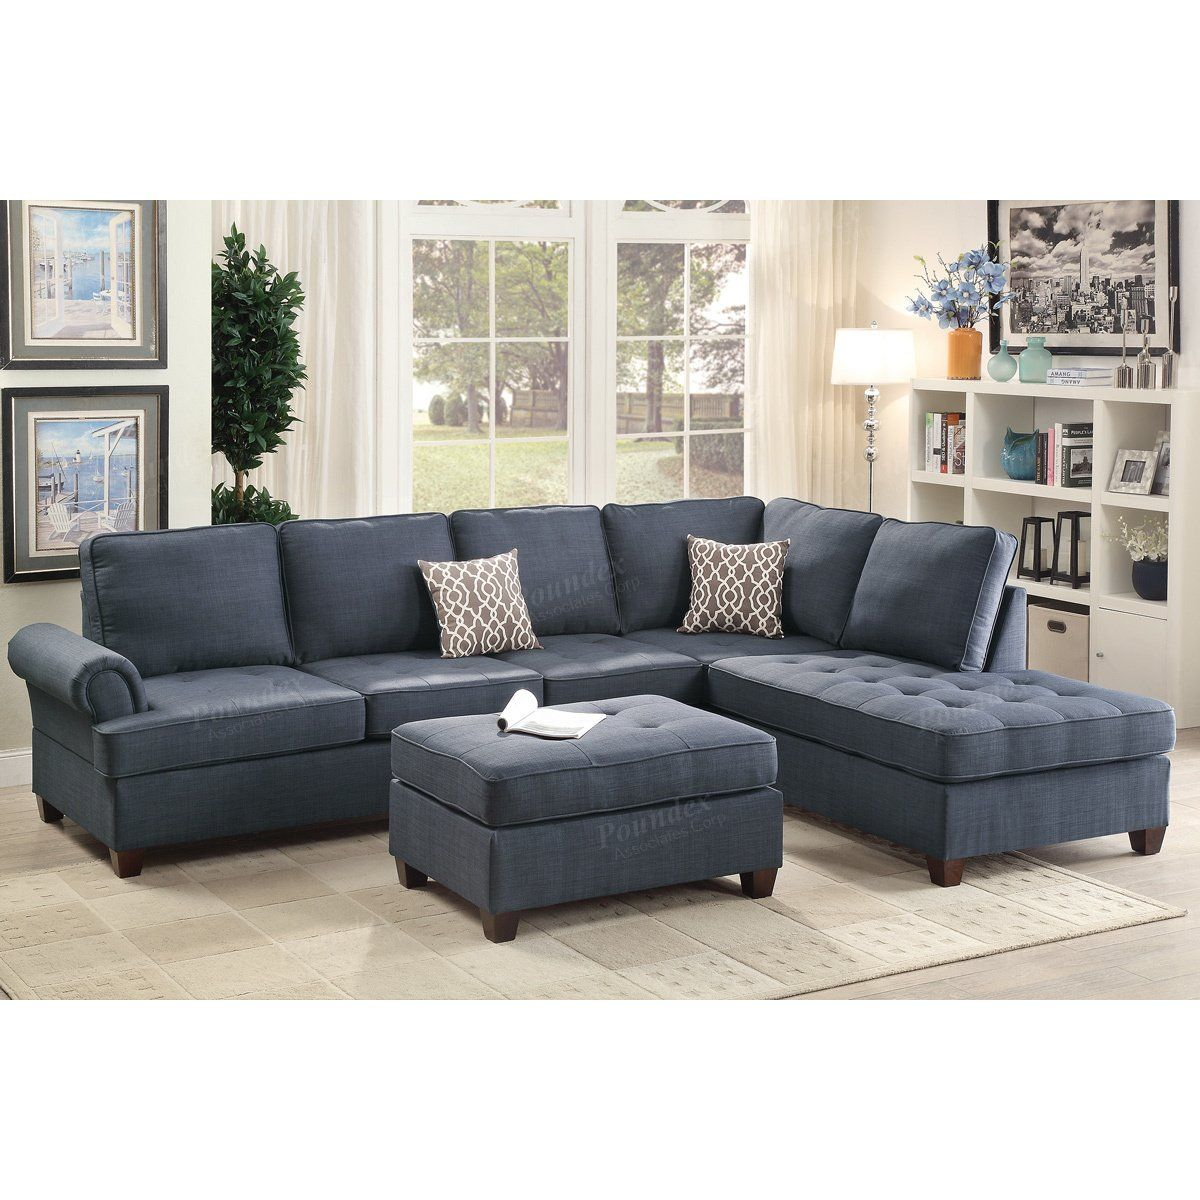 Brylee 118 Reversible Sectional Fabric Sectional Sofas Sectional Sofa Sectional Sofa Couch